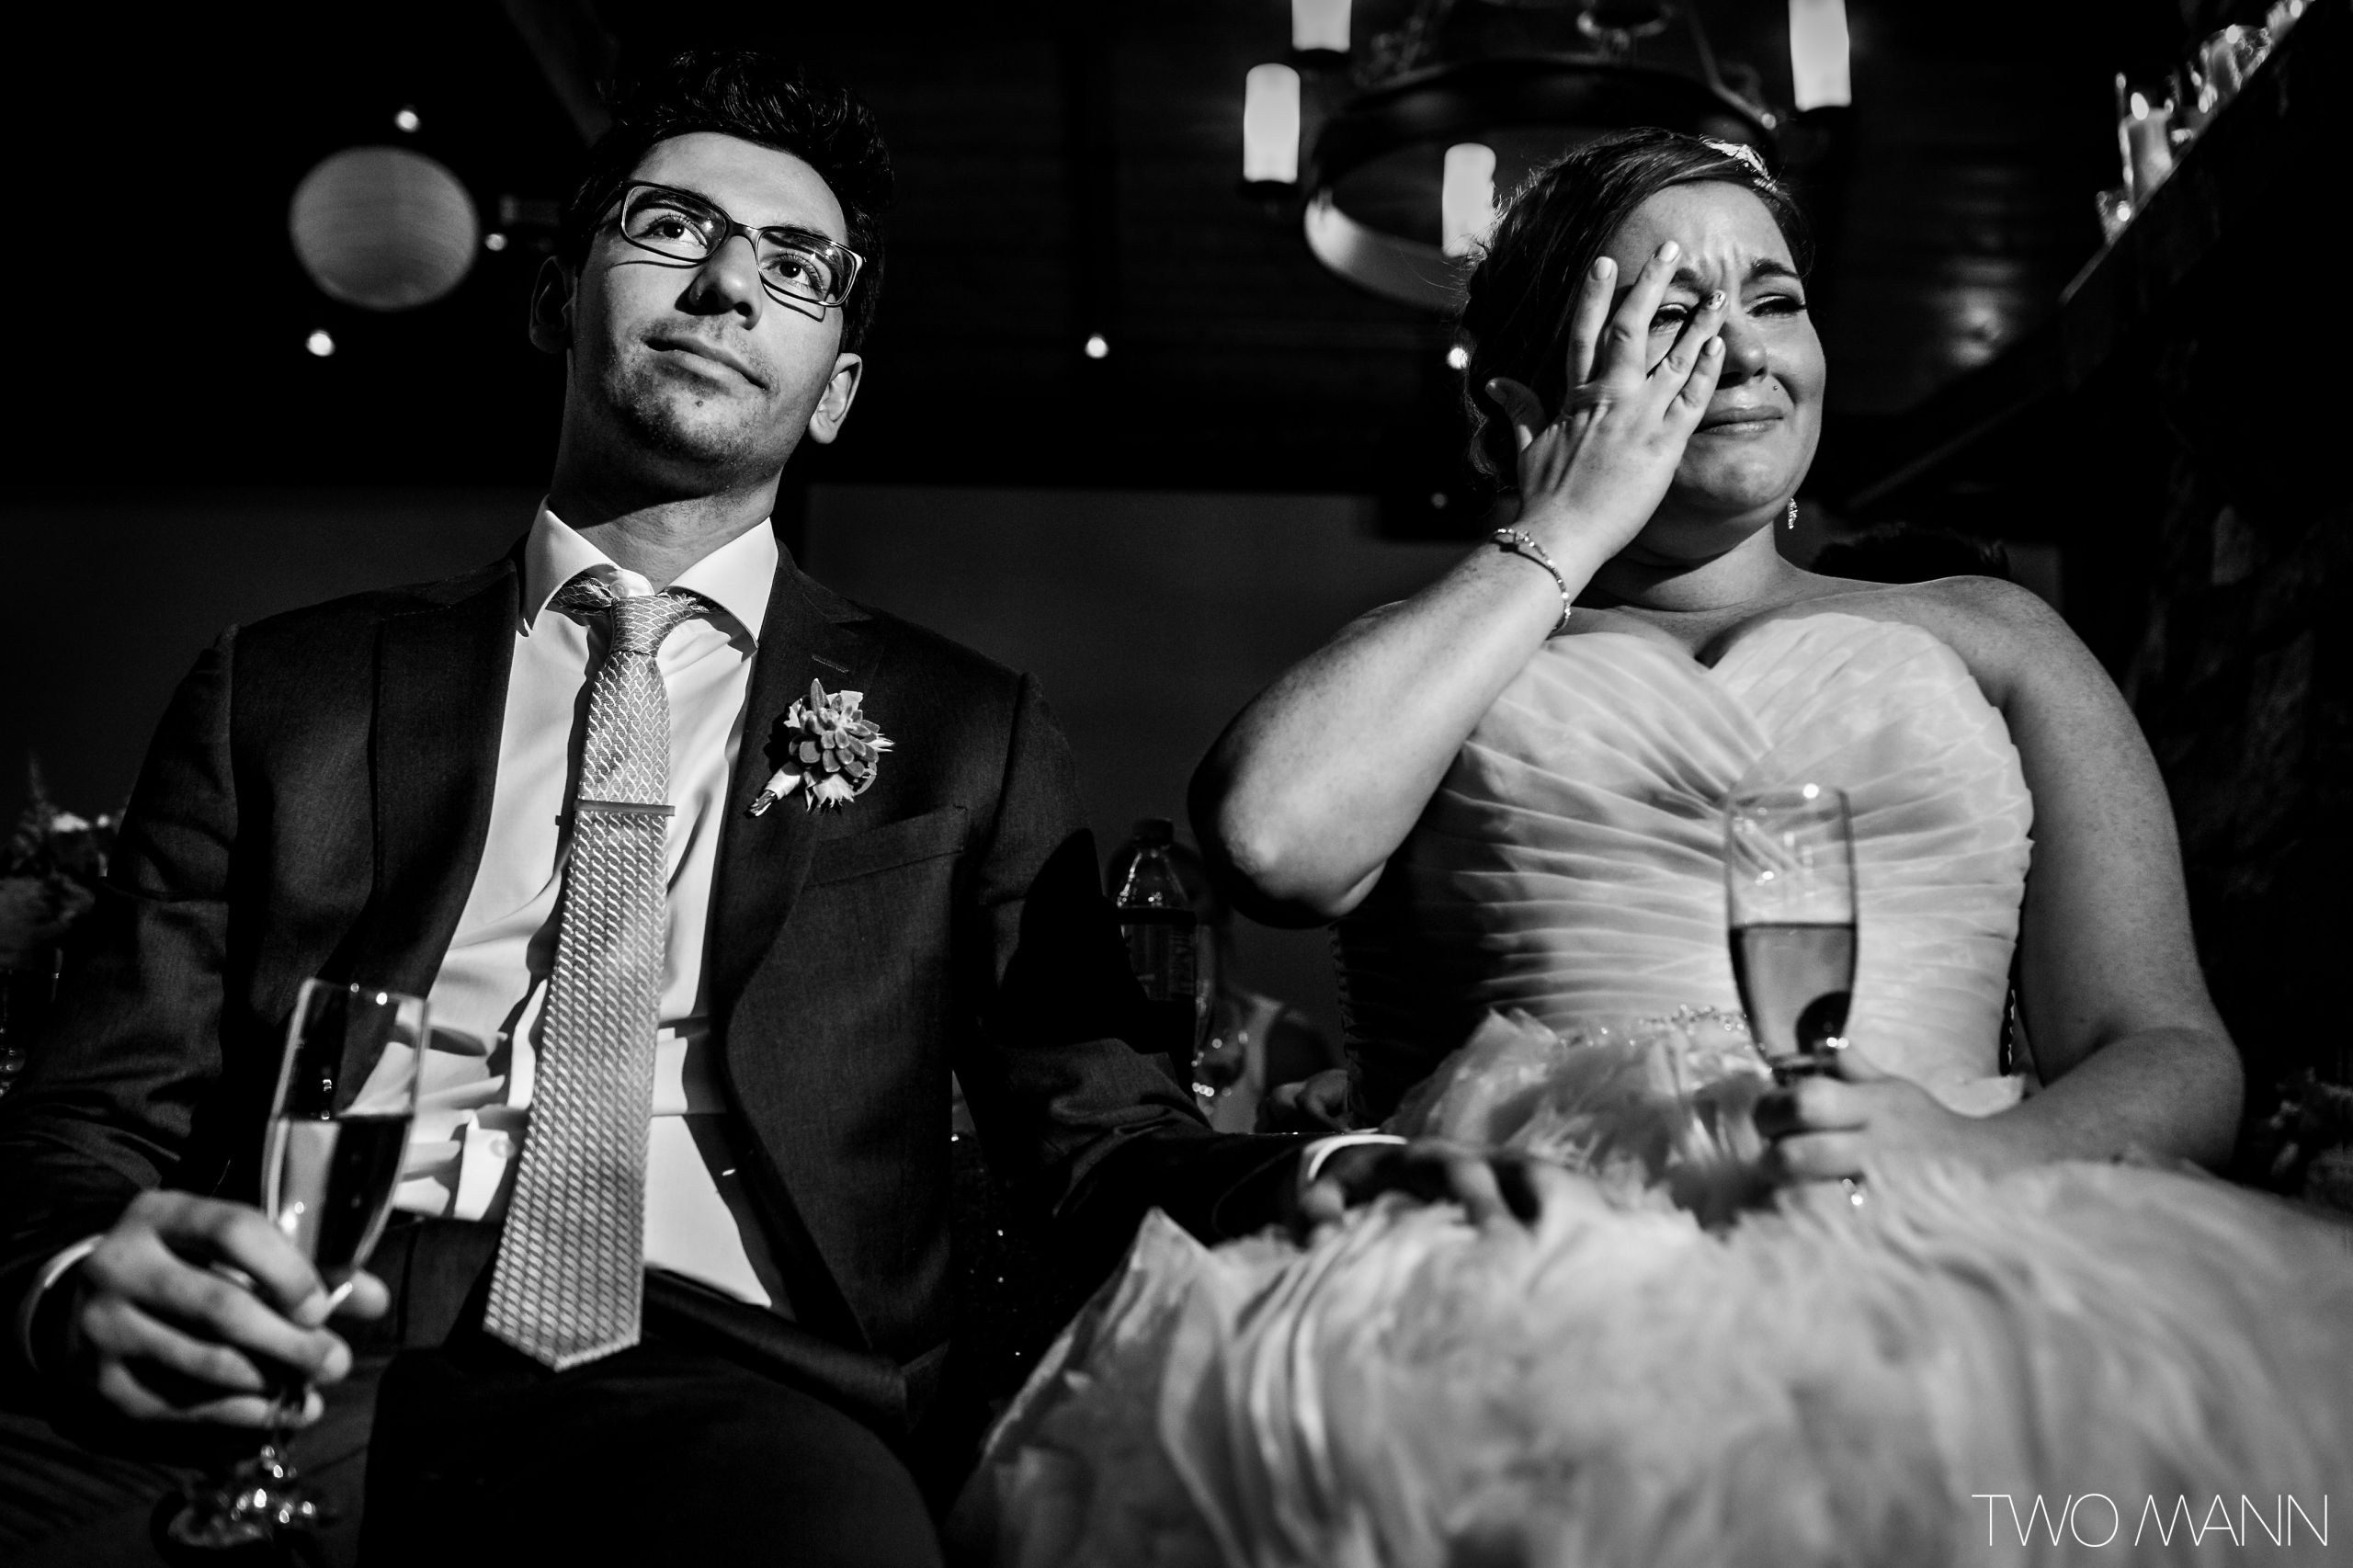 canmore-wedding-photography-two-mann-sabin-steph-28